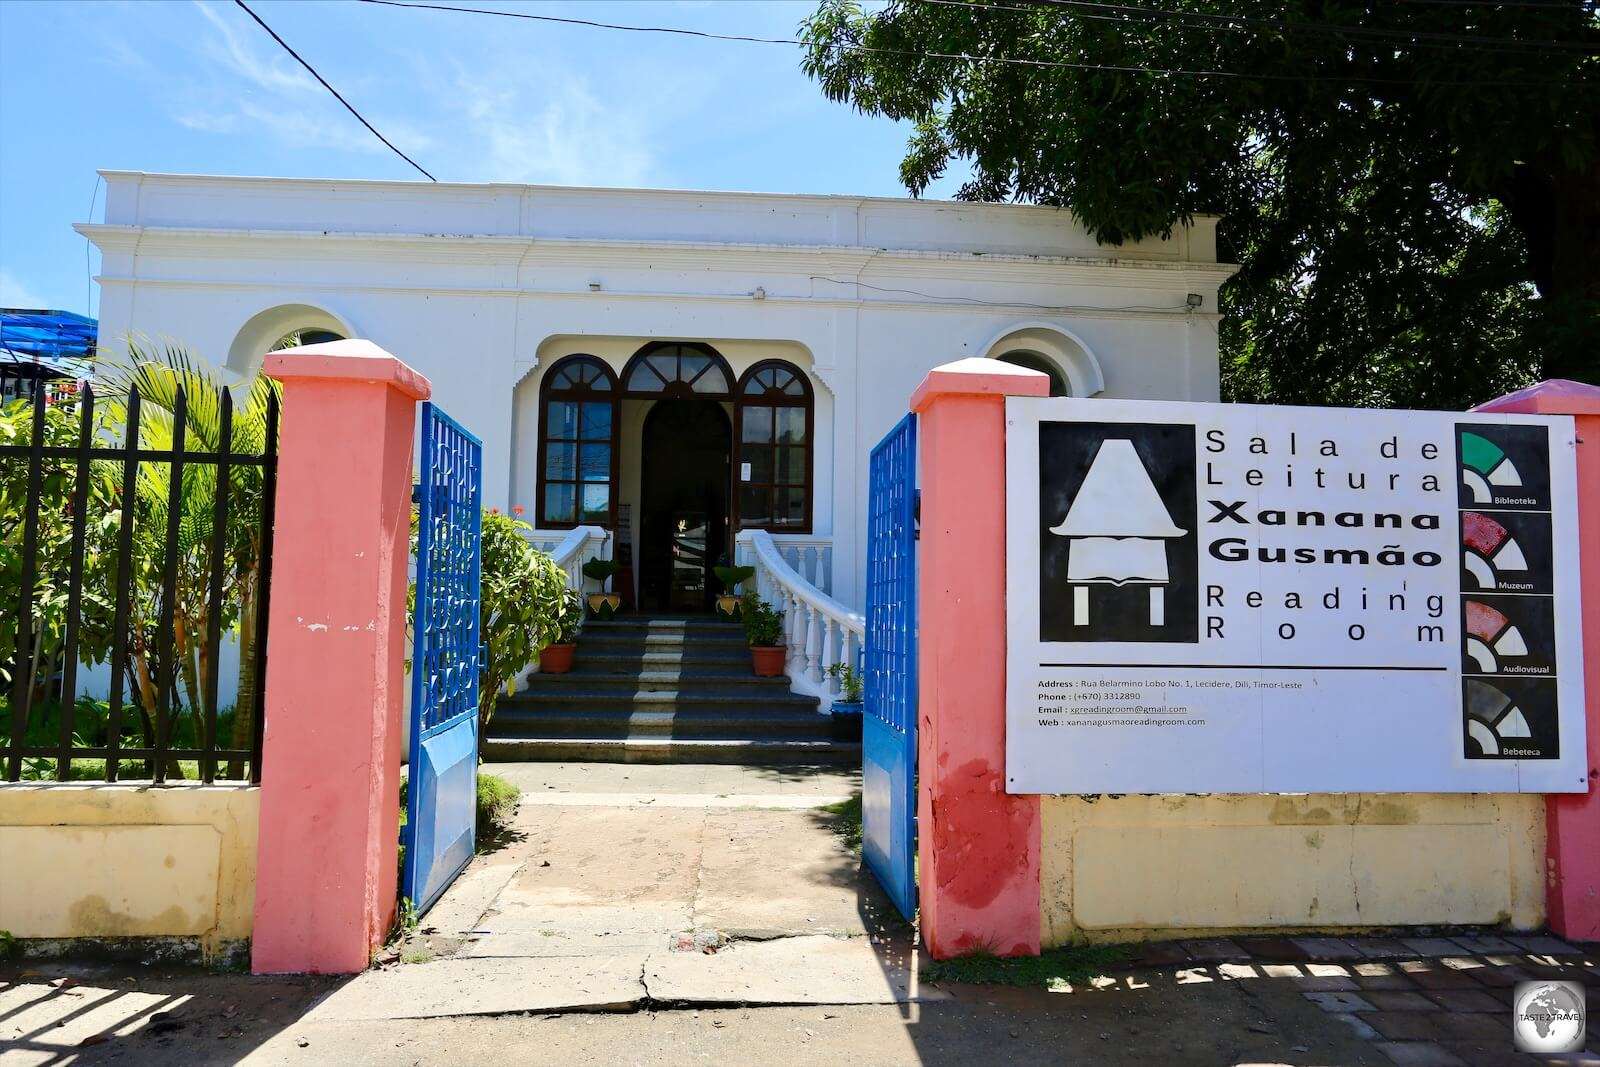 The museum at the Xanana Gusmão Reading Room complex is housed in a Portuguese-era building.